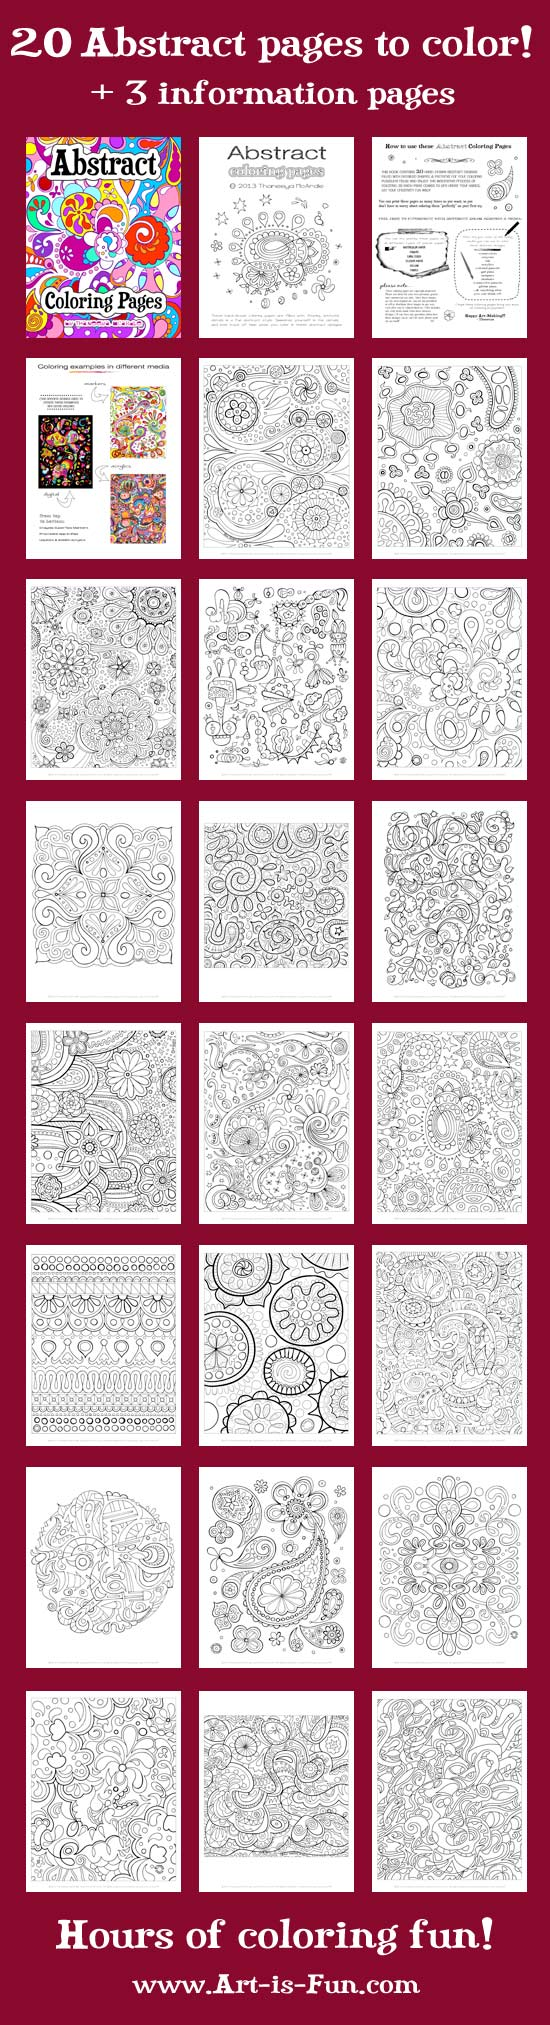 abstract coloring book pages - photo#40